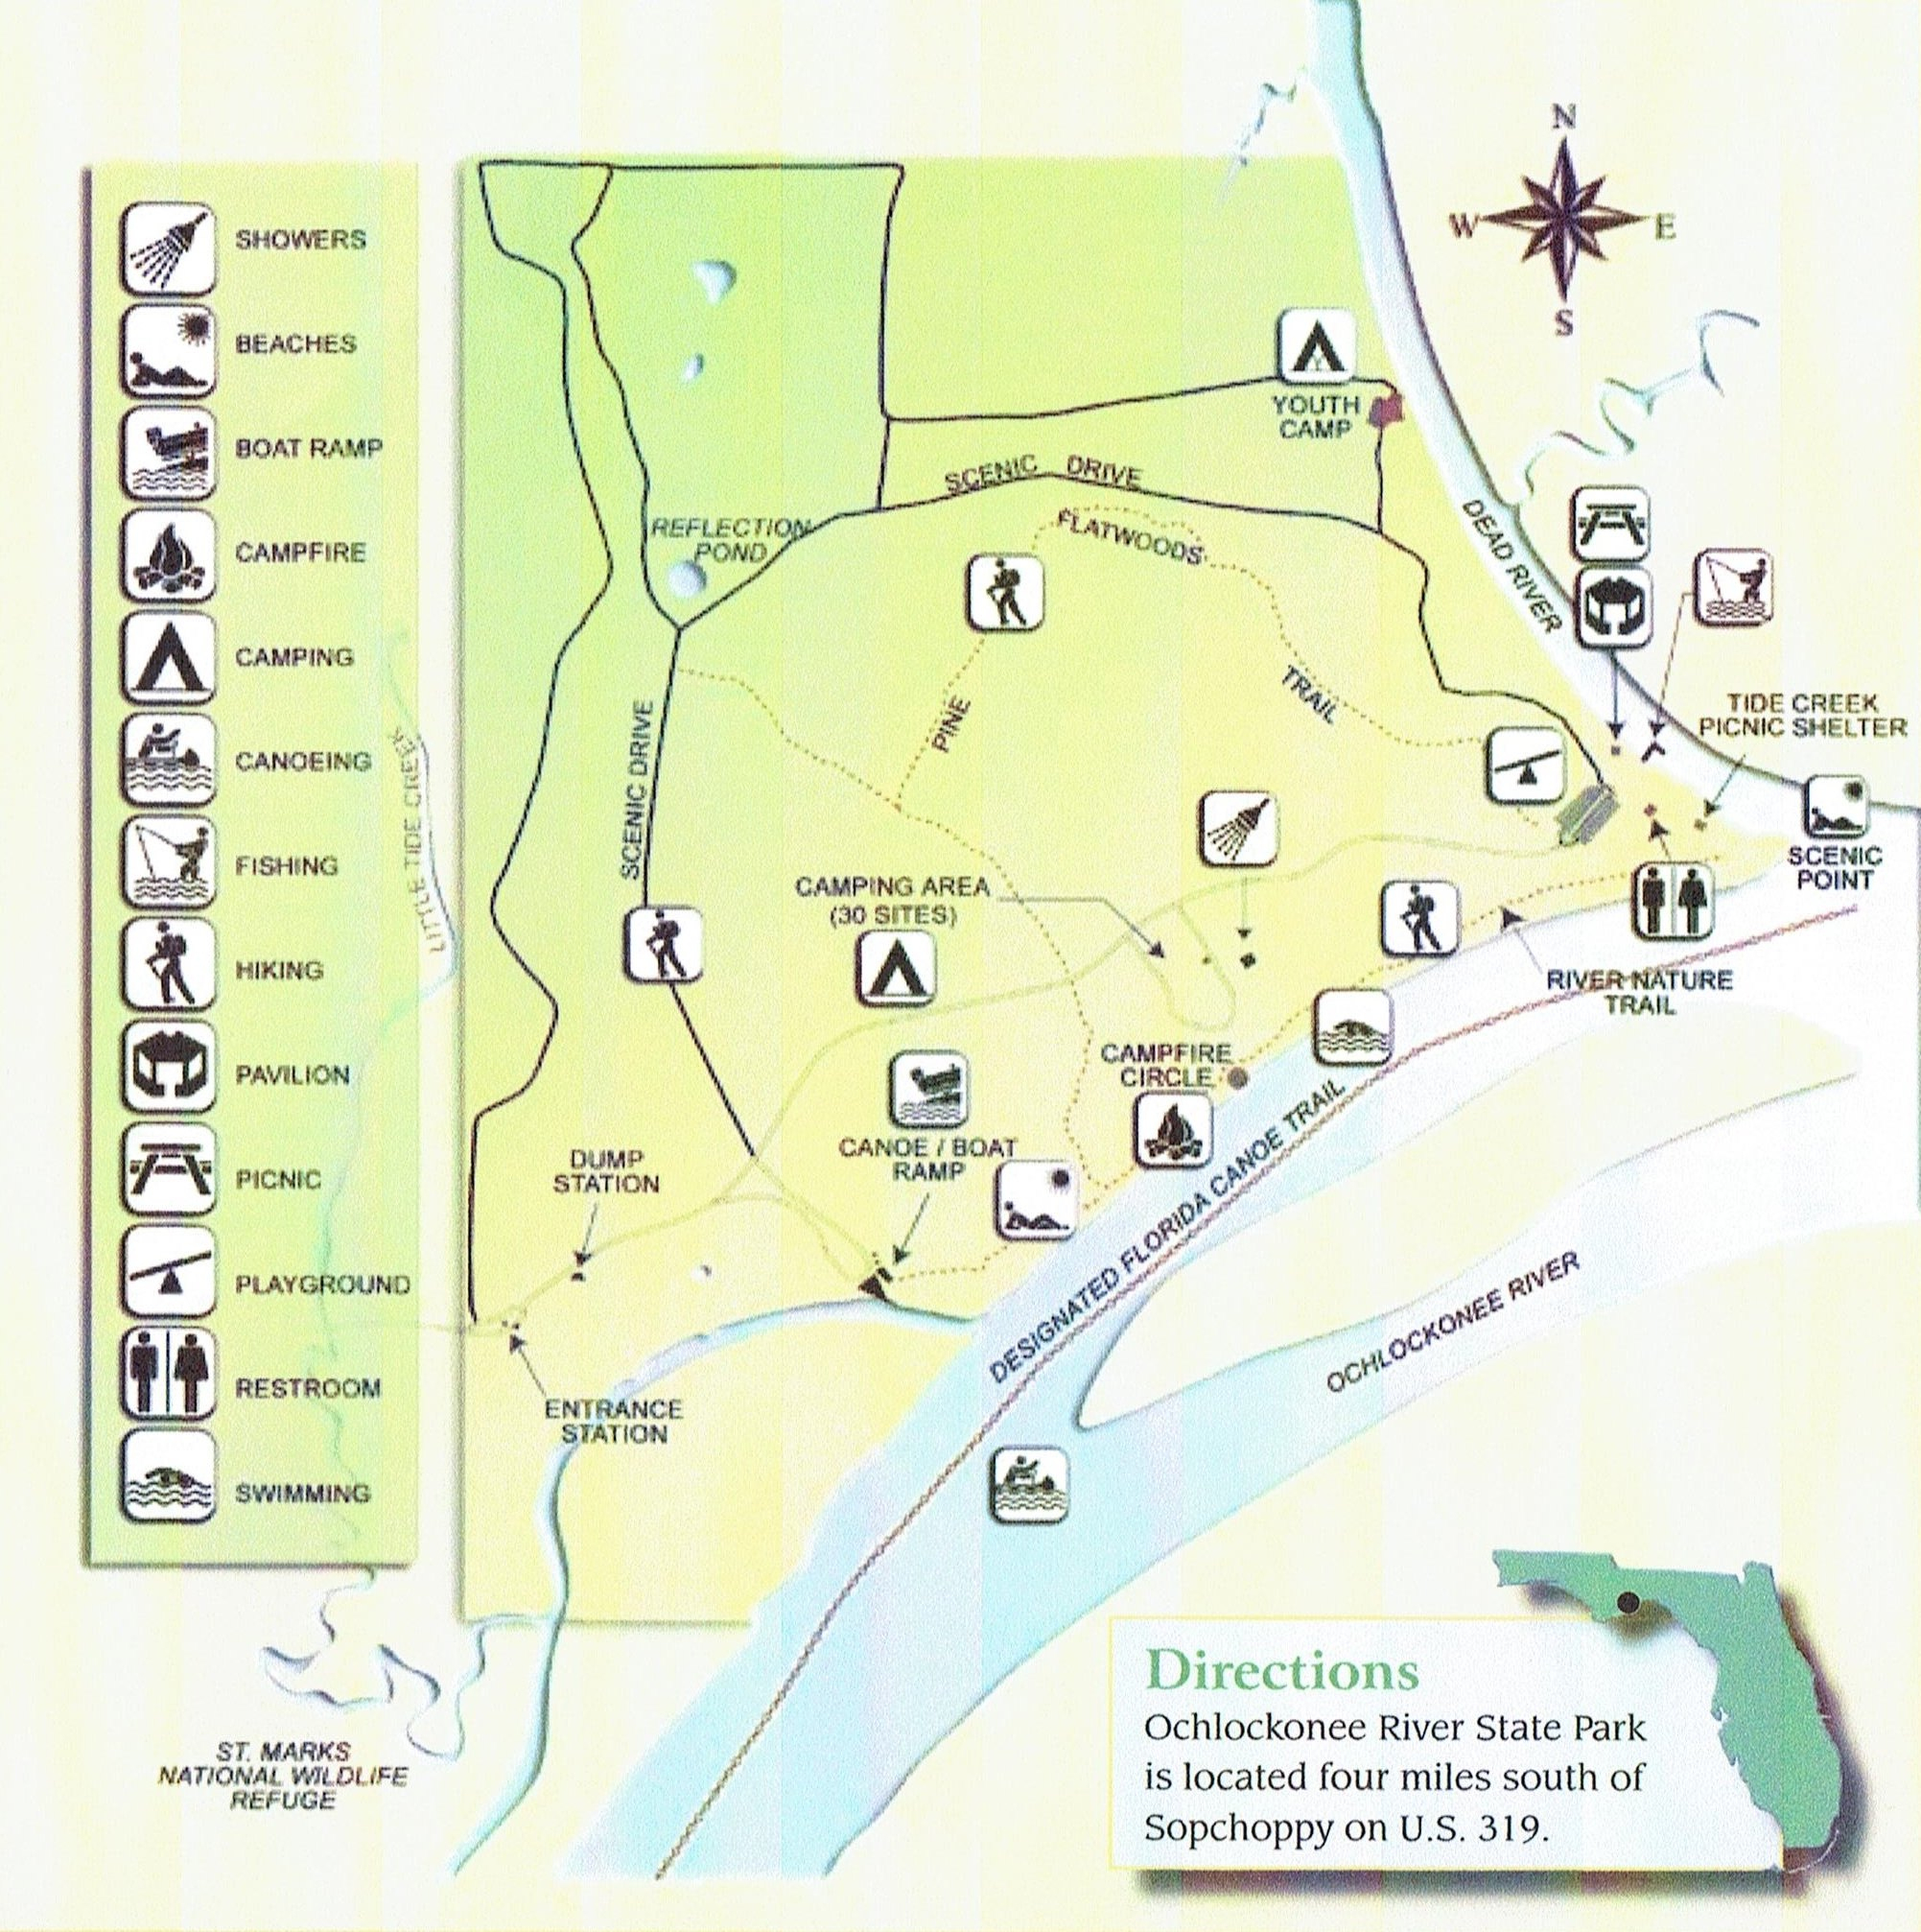 Ochlockonee River State Park - Camping - Places To Stay - Carrabelle - Camping In Florida State Parks Map